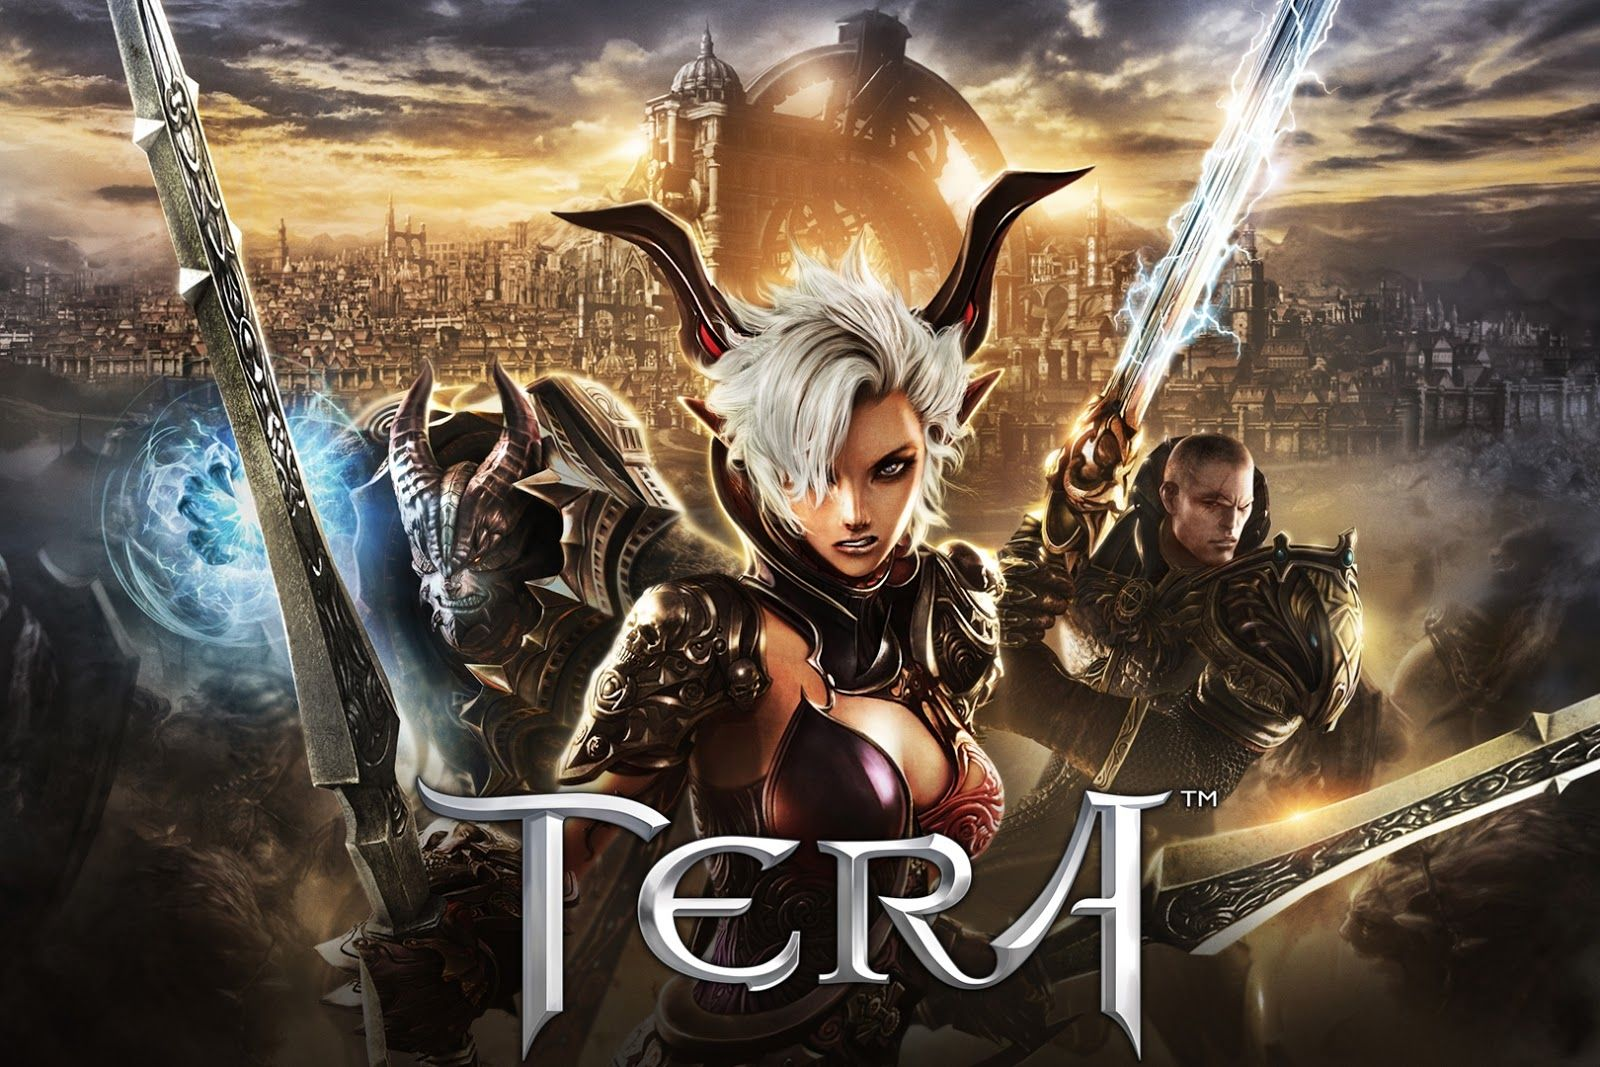 Tera Online Mmorpg, Video games, Mmo games